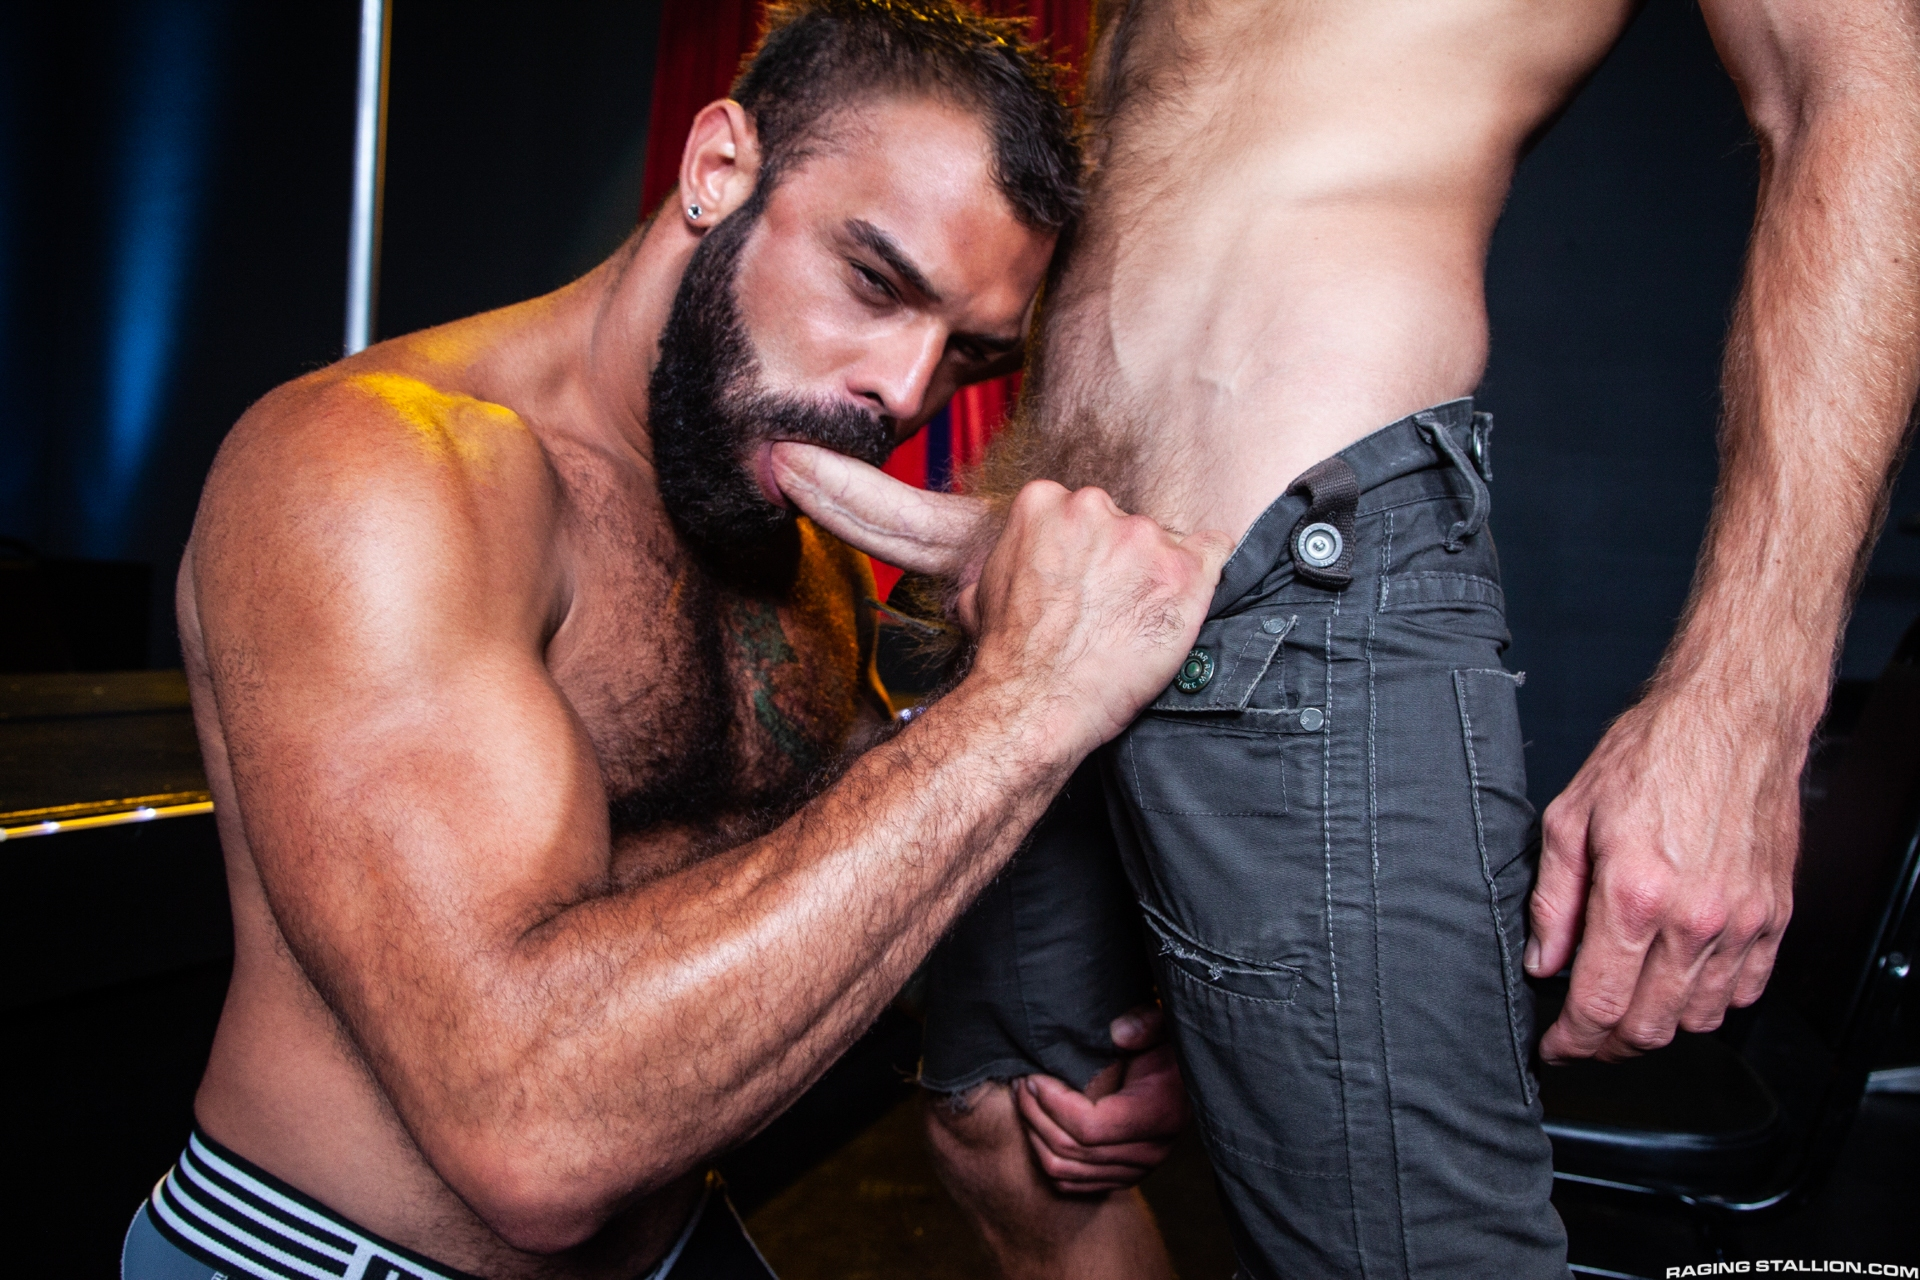 Otter Erotic Scene 3 - Raging Stallion